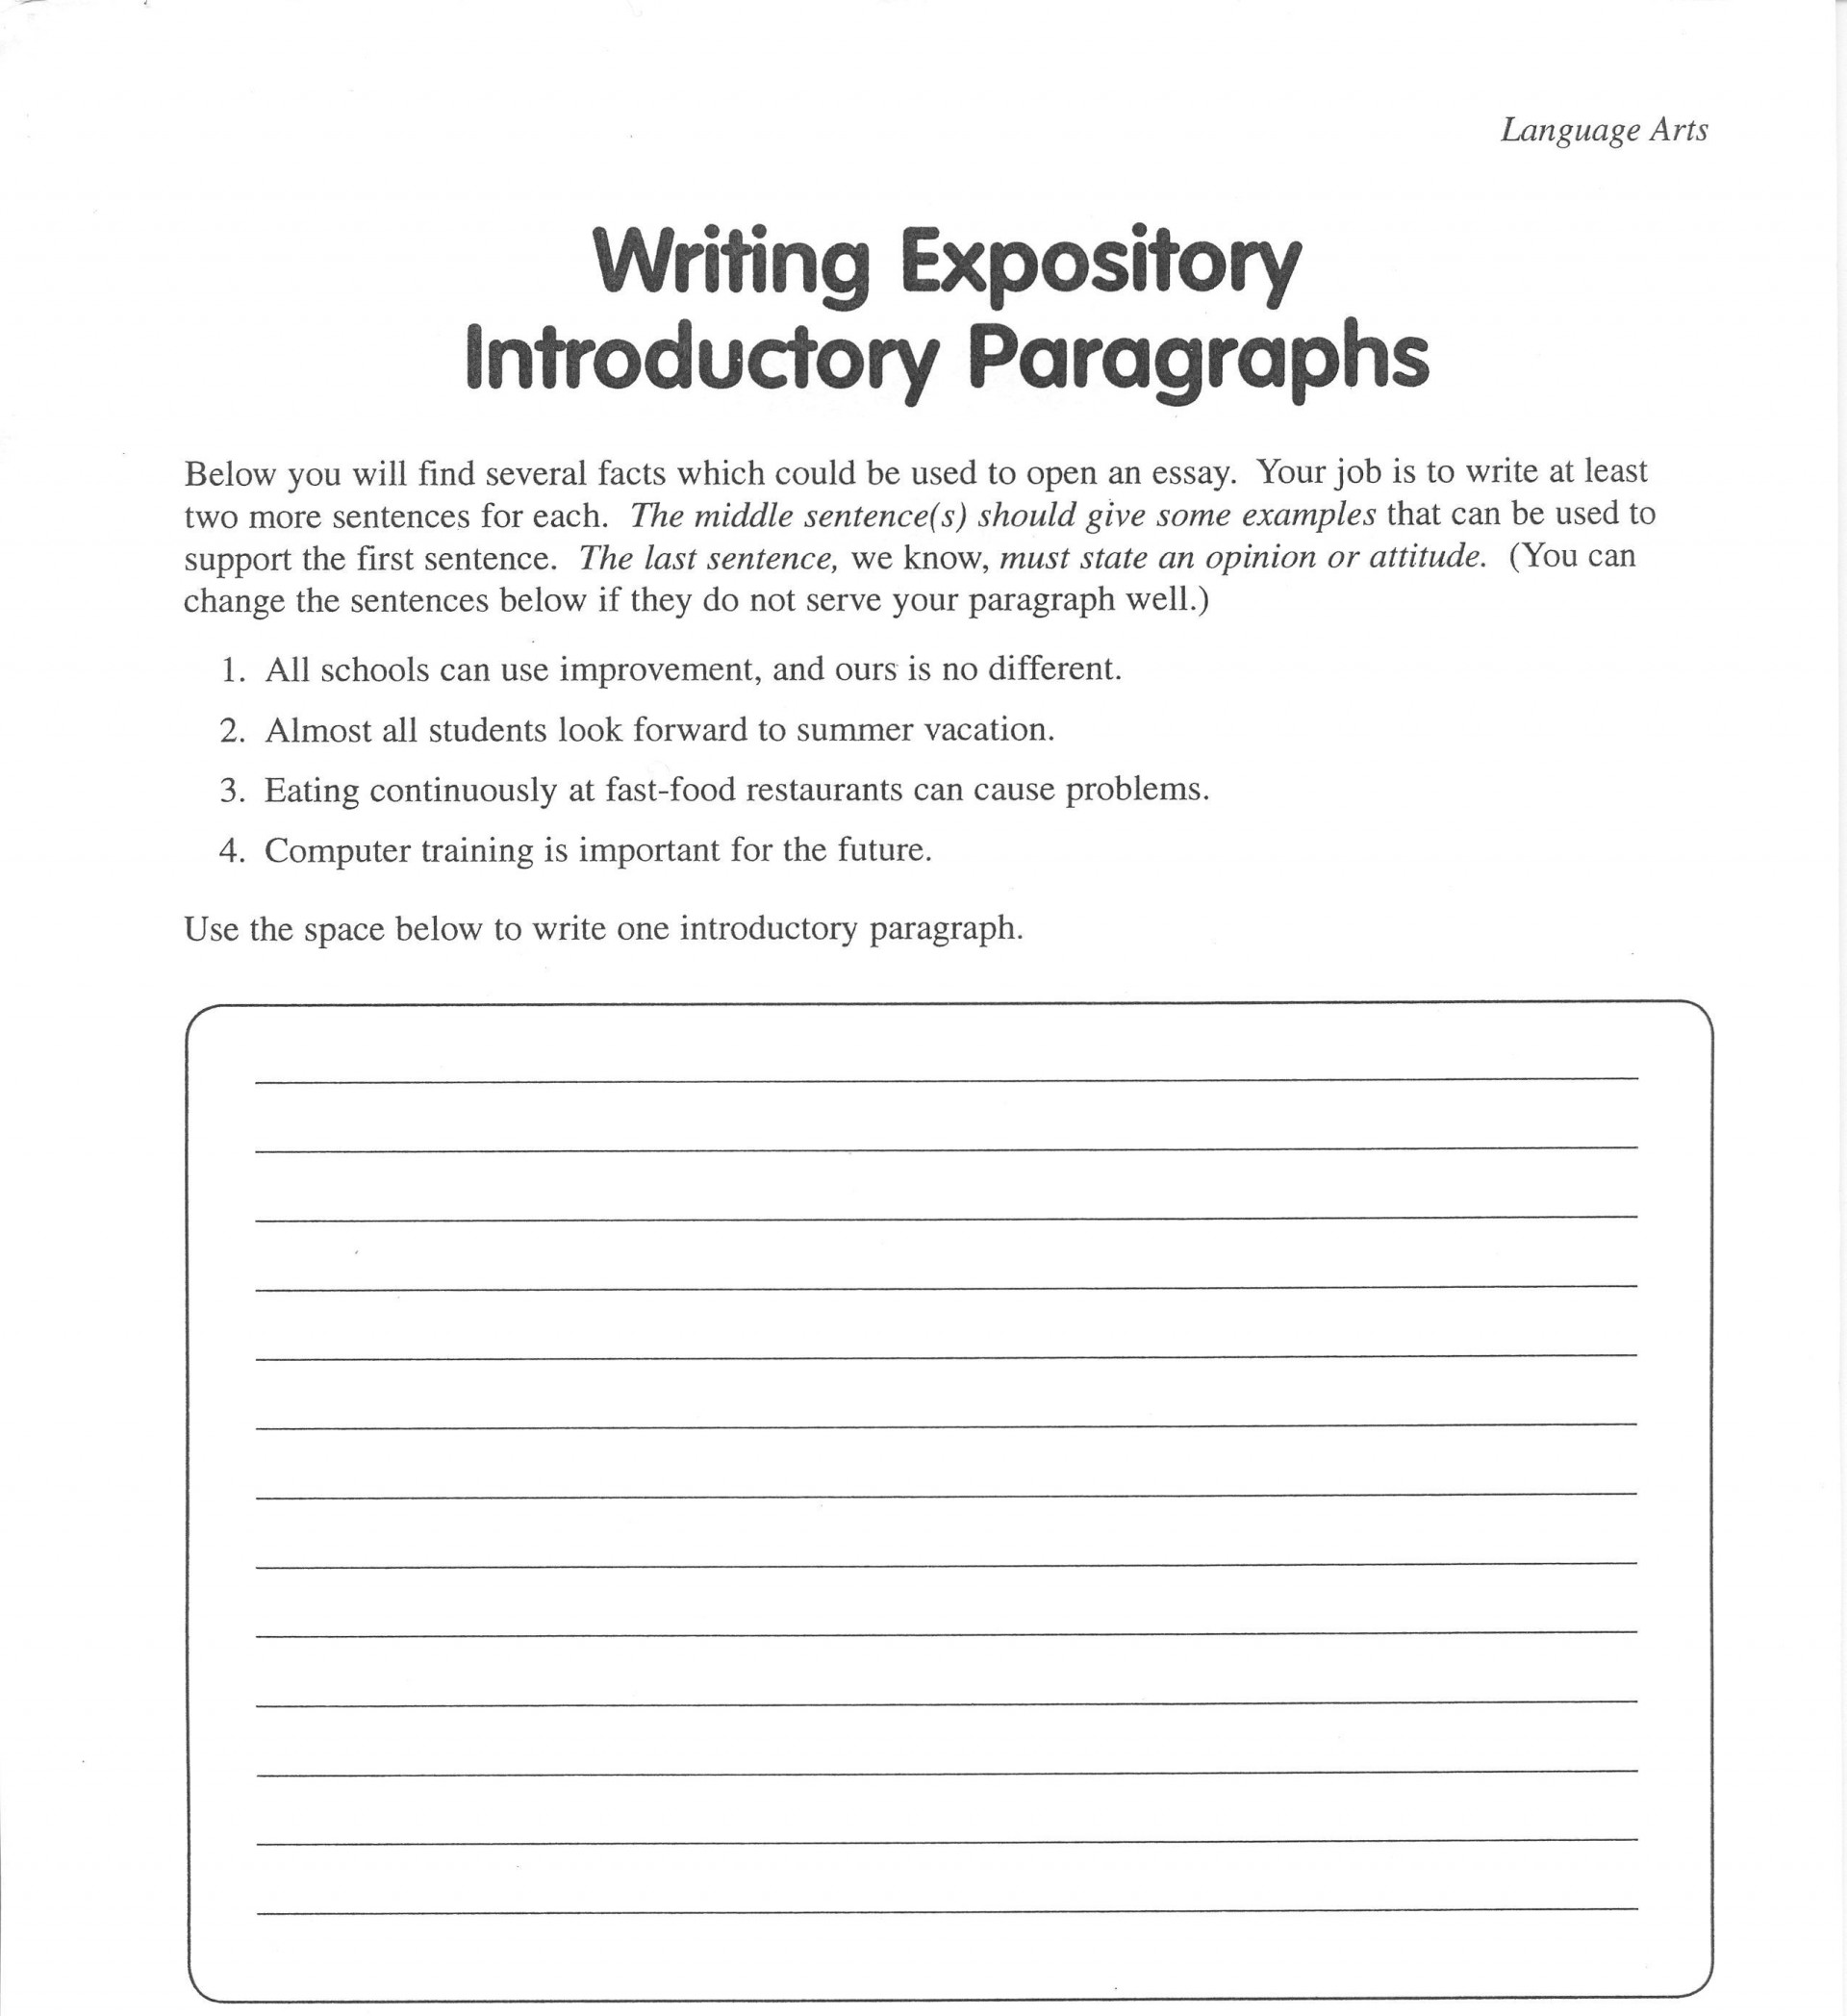 010 Writing20expository20introductory20paragraphs Intro Paragraph Essay Outstanding Example Introductory Argumentative Introduction Persuasive Compare Contrast Examples 1920